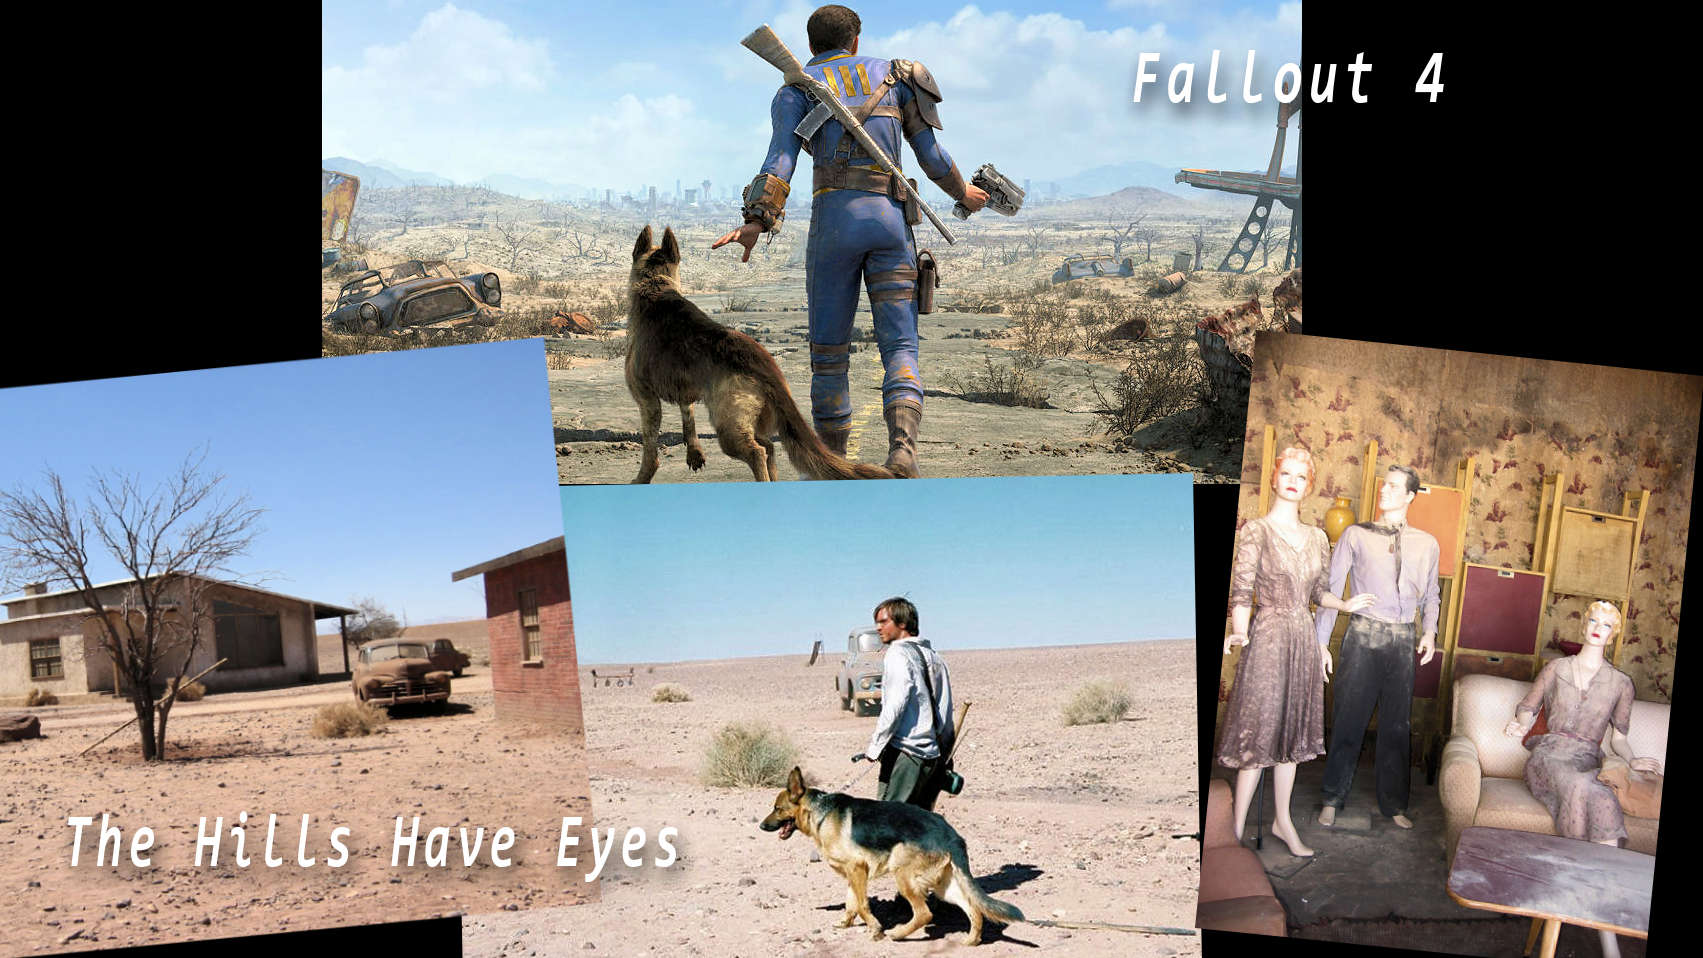 Fallout 4 vs The Hills Have Eyes